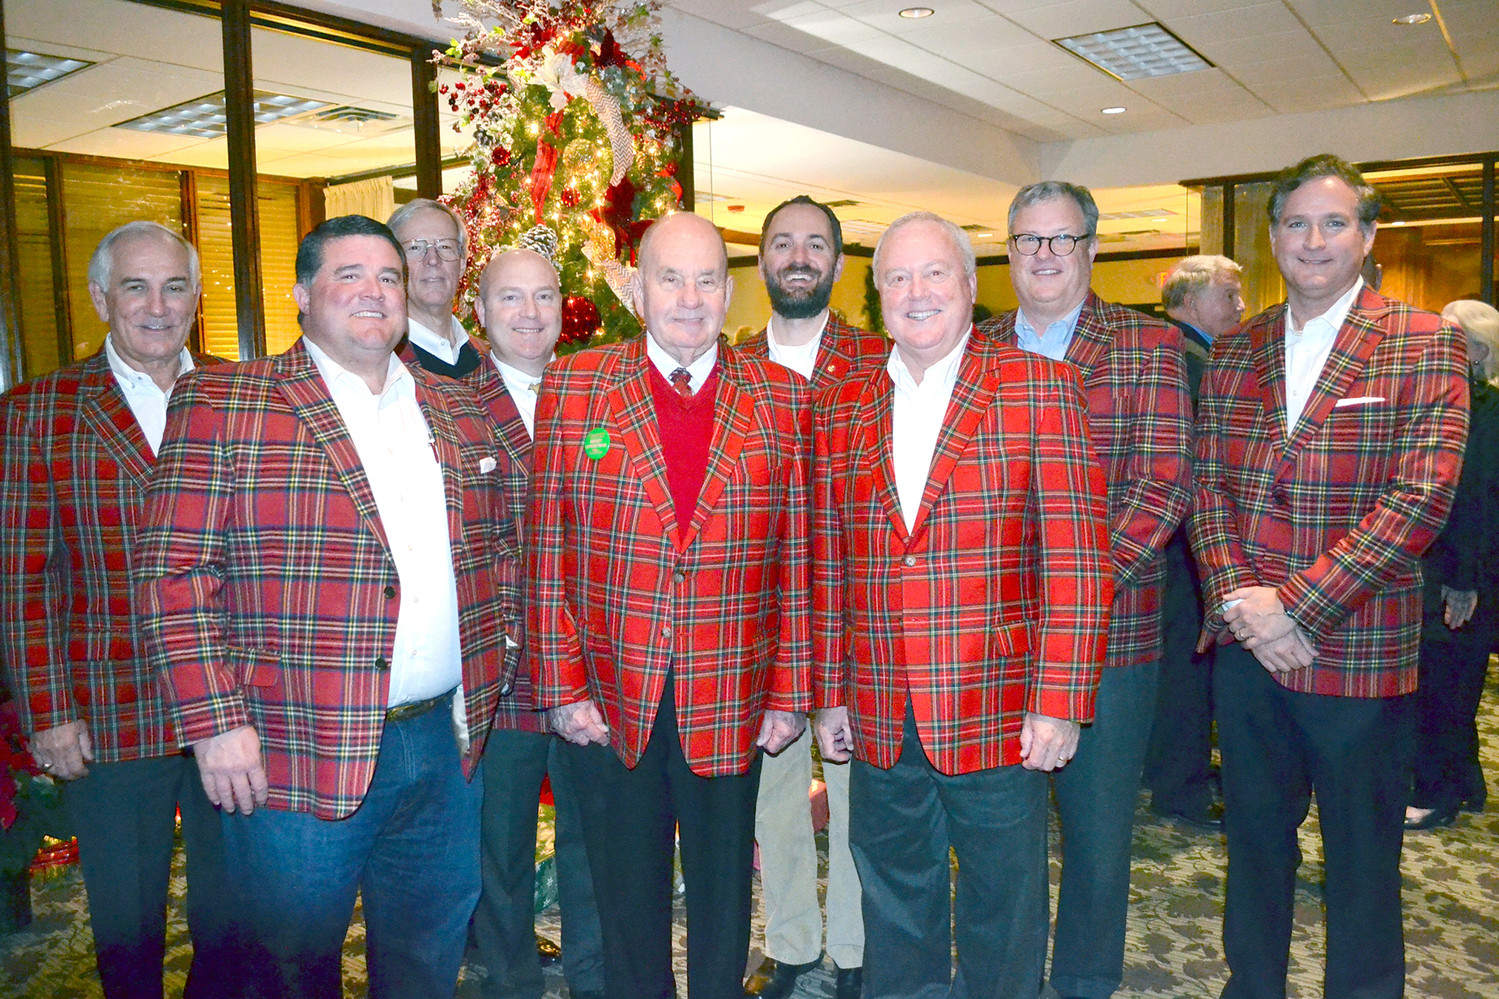 MANY MAINSTREET MEMBERS remembered Bobby Taylor by wearing a plaid jacket, one of Taylor's trademarks. From left are Scott Taylor, Andy Figlestahler, Joe Mason, Tony Martin, Mayor Tom Rowland, Nicholas Lillios, Lou Patten, Julian Sullivan and Tucker Duncan. Taylor was wearing his father's blazer, which he said is 35 years old.